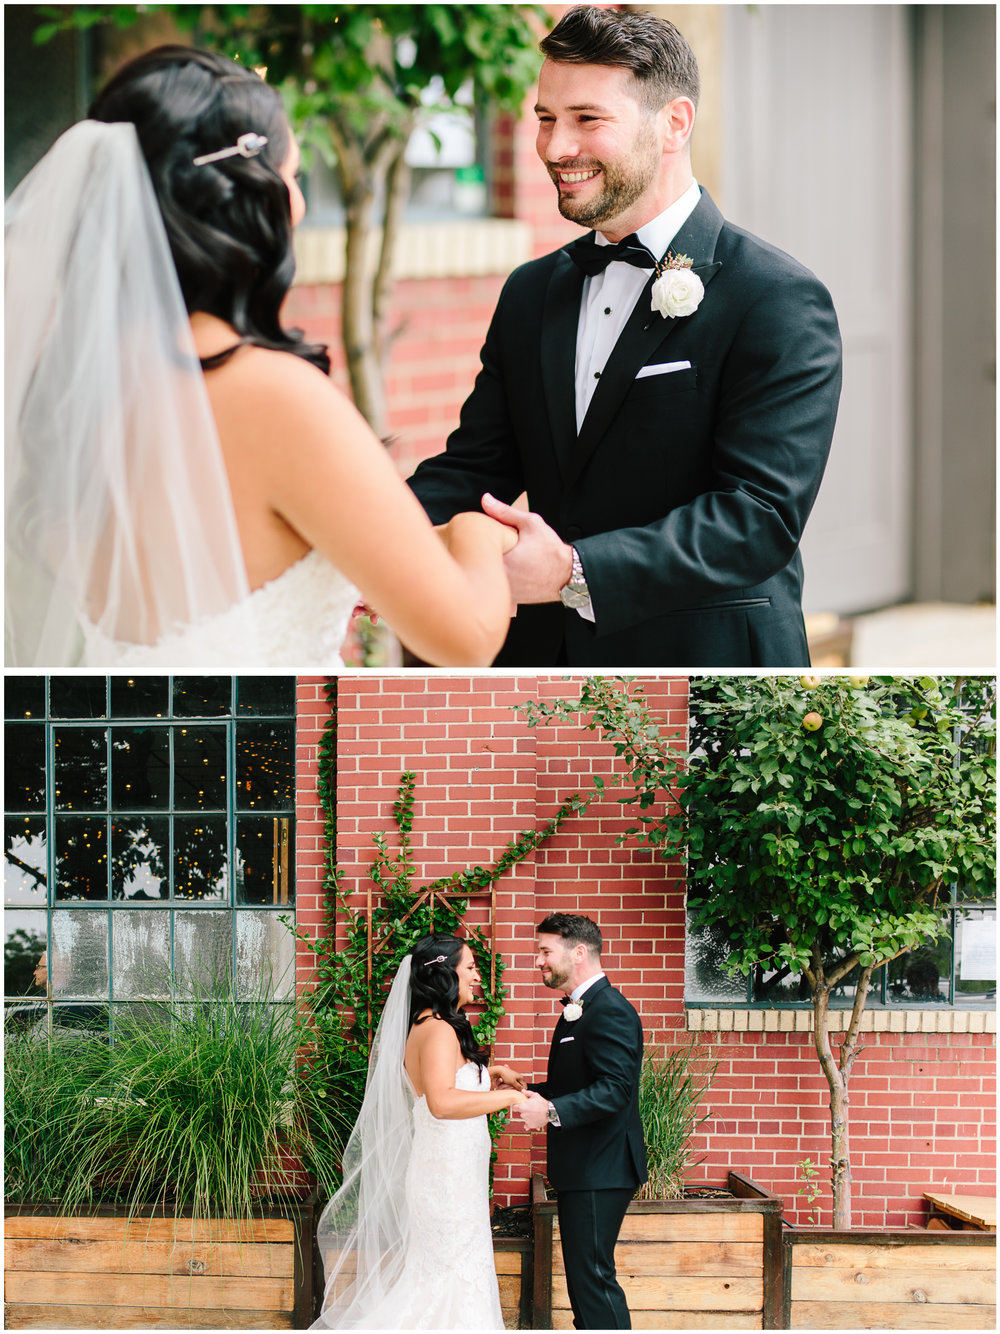 moss_denver_wedding_18.jpg